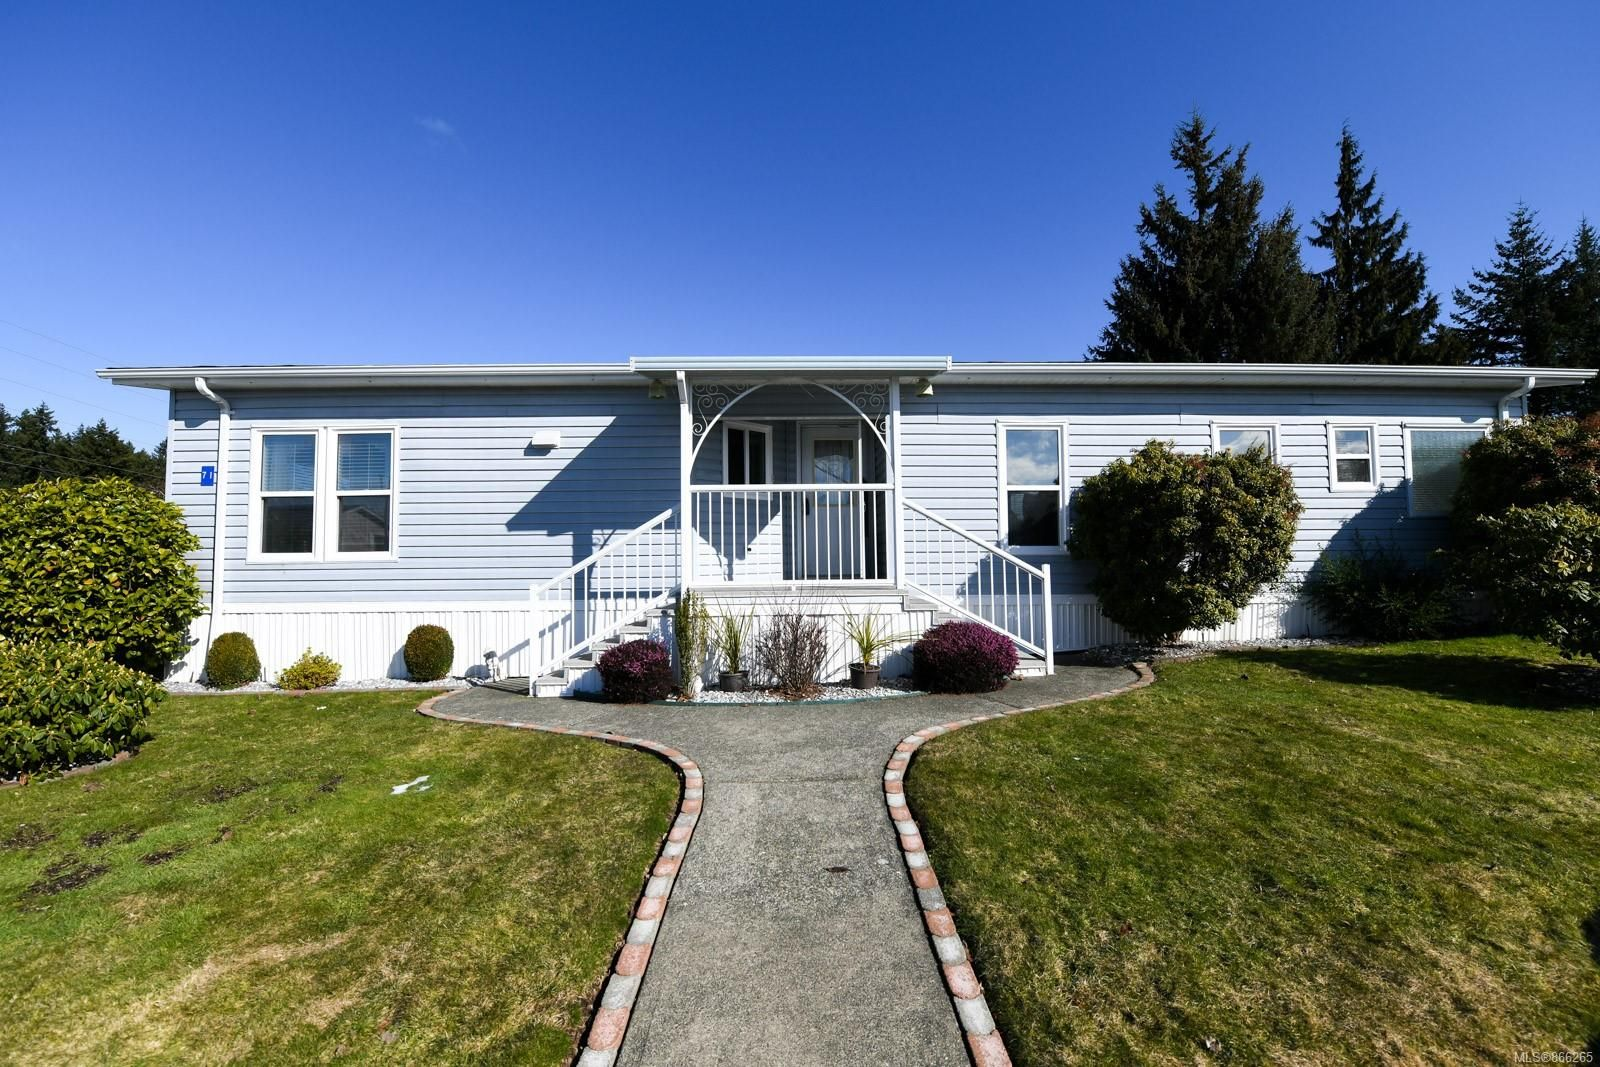 Main Photo: 71 4714 Muir Rd in : CV Courtenay East Manufactured Home for sale (Comox Valley)  : MLS®# 866265